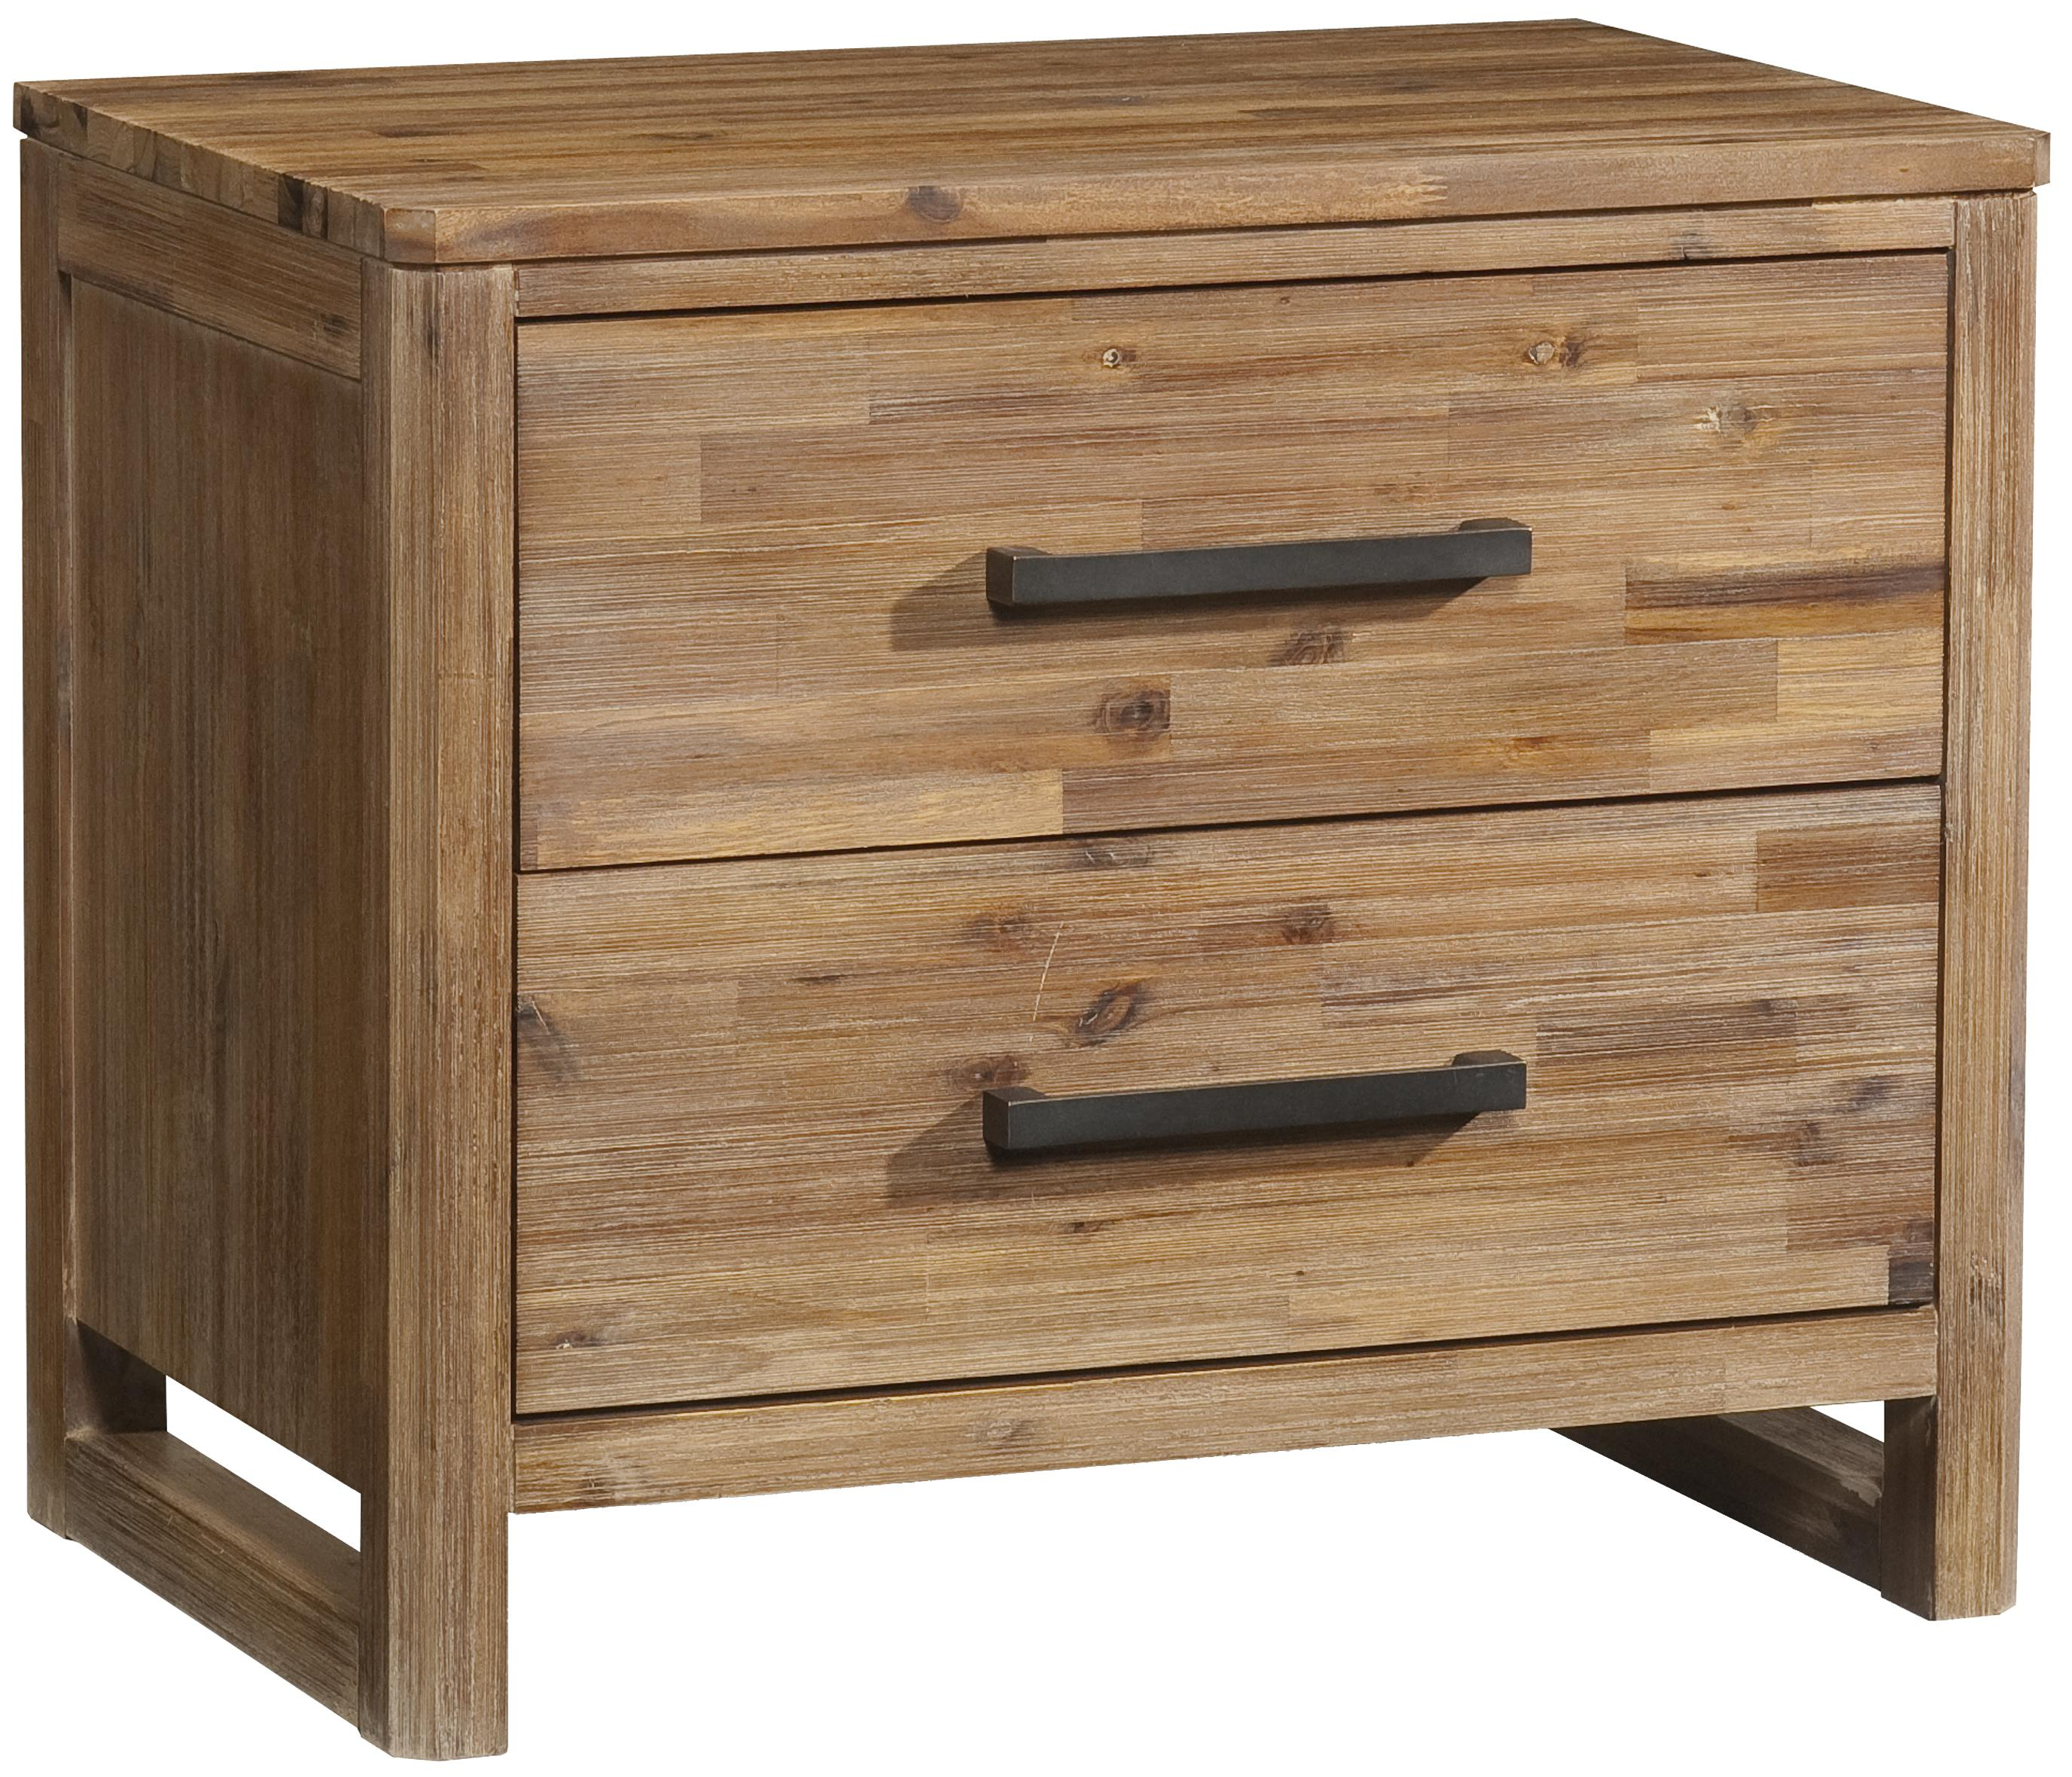 bedroom hgtv dresser design chest wood blog under dressers decorating budget rustic s beautiful wooden